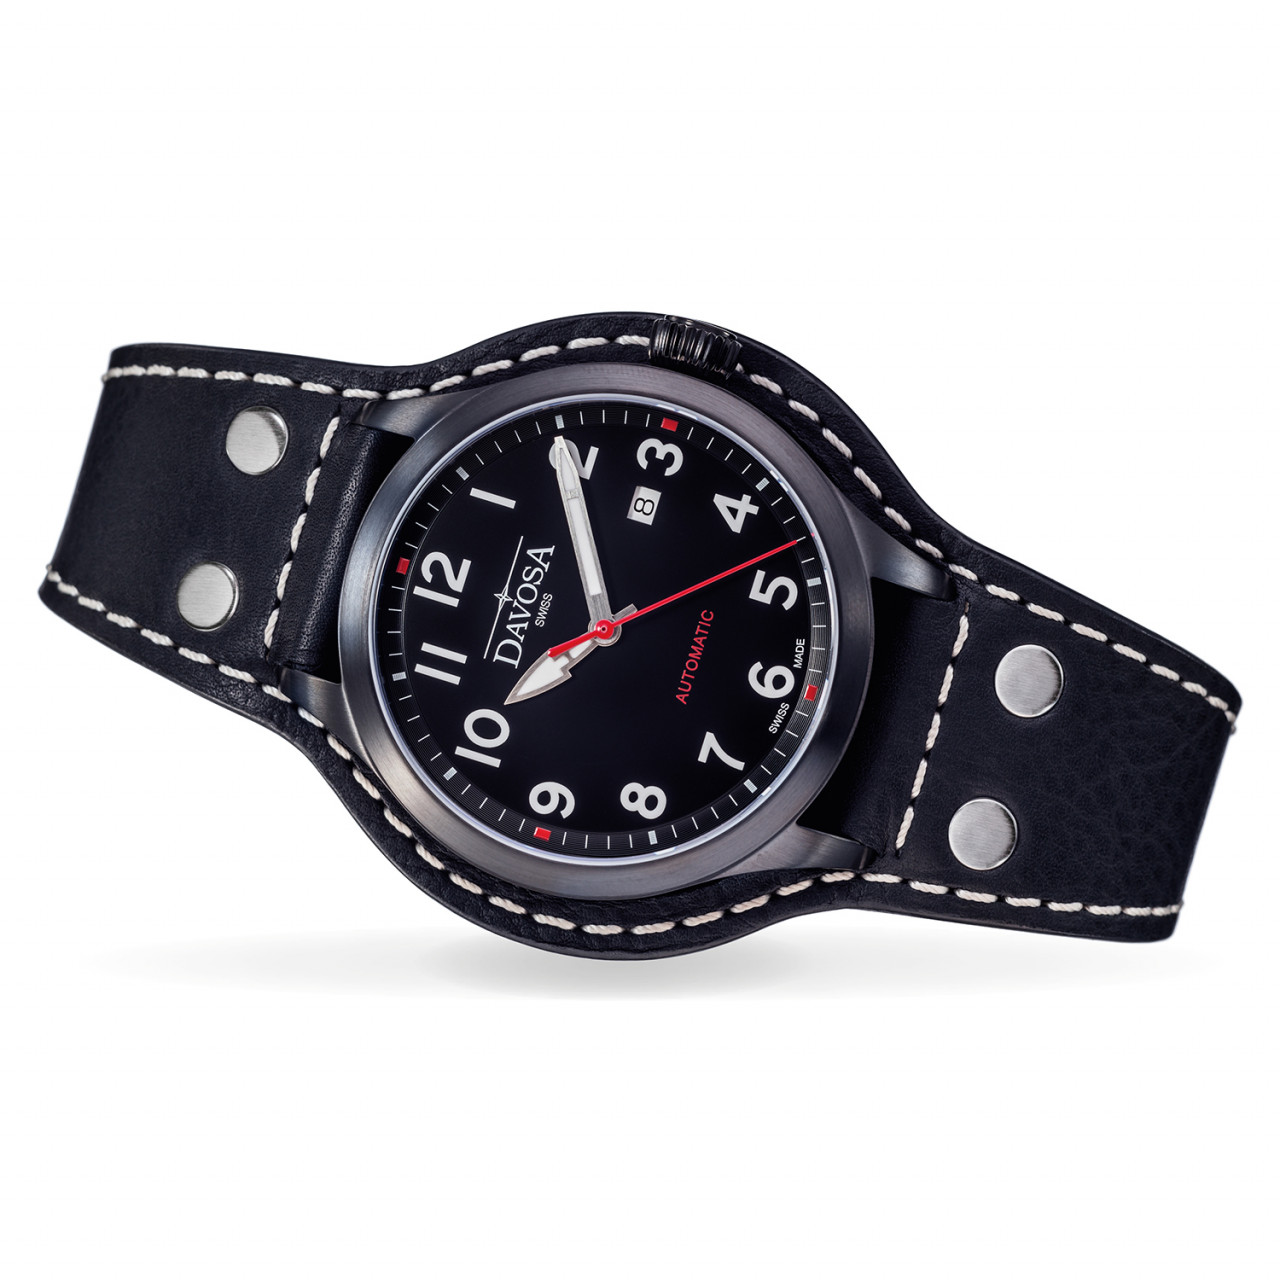 Axis Automatic PVD black